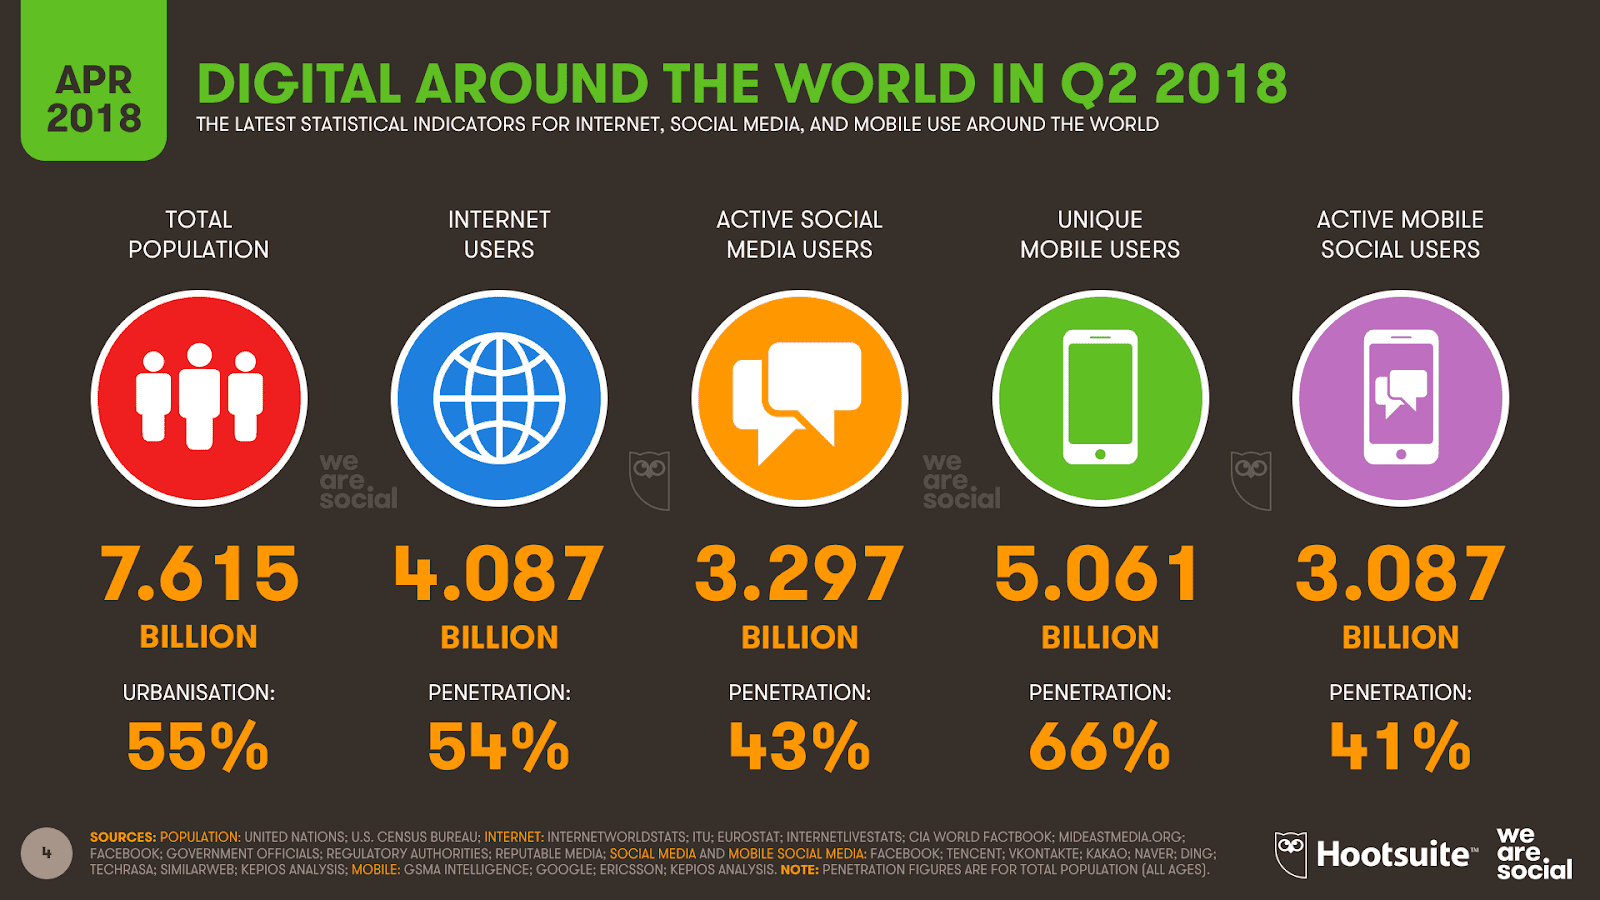 A latest study shows that the number of people around the world using social media grew by more than 100 million in the first three months of 2018, reaching almost 3.3 billion by the end of March.